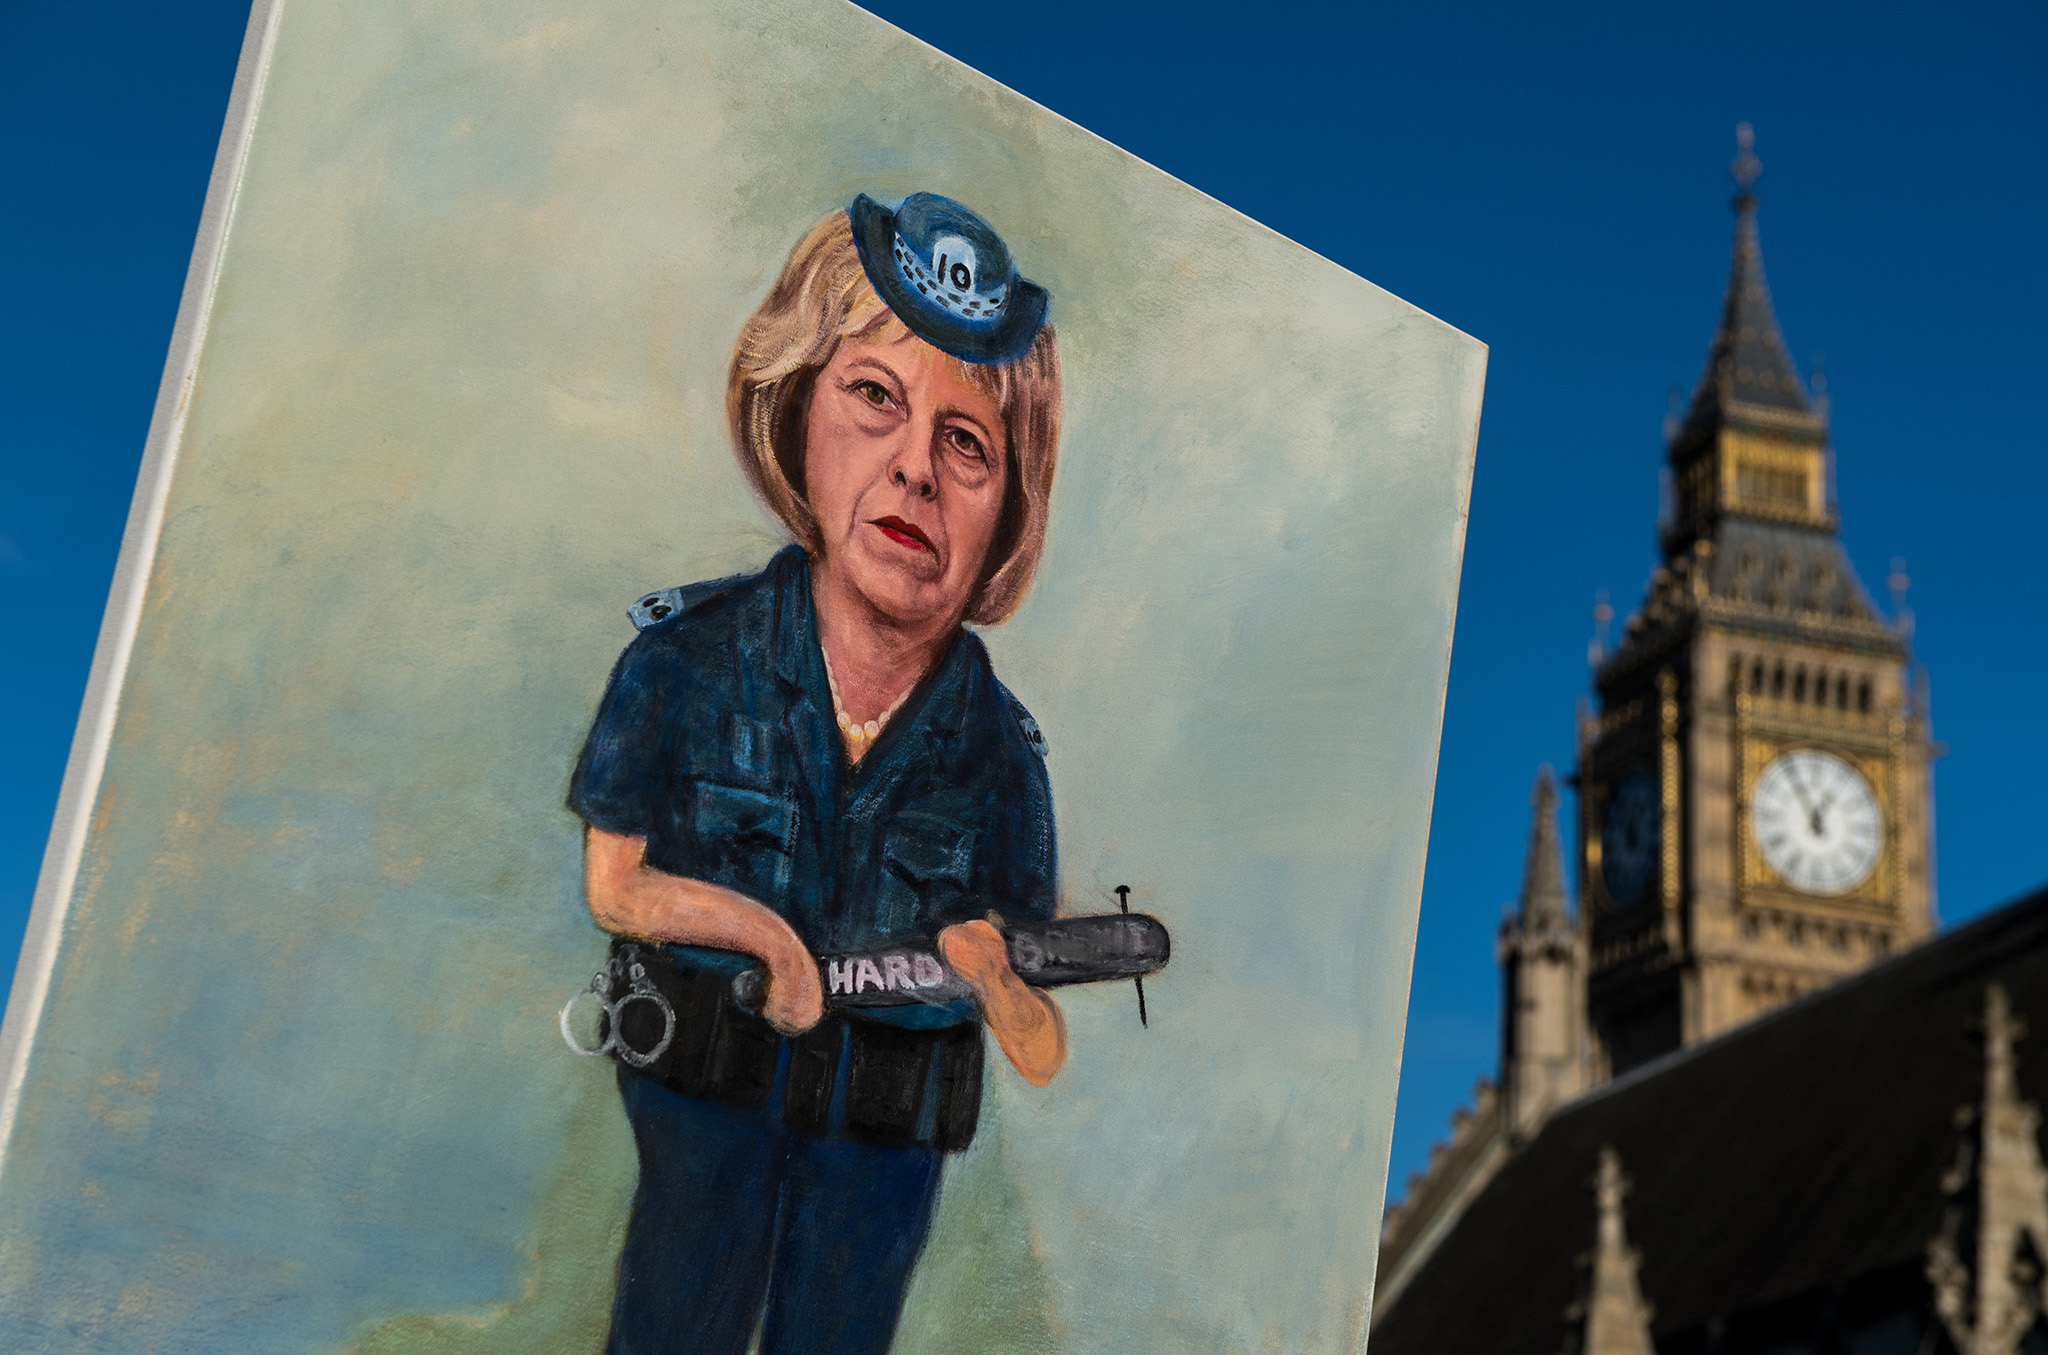 Artist Kaya Mar holds his latest painting of Theresa May dressed as a police officer holding a truncheon with 'Hard Brexit' written on it in front of the Houses of Parliament on January 17, 2017 in London, England. Today in a long awaited speech, British Prime Minister Theresa May outlined the prioirites for the United Kingdom in Brexit negotiations.  (Photo by Chris J Ratcliffe/Getty Images)